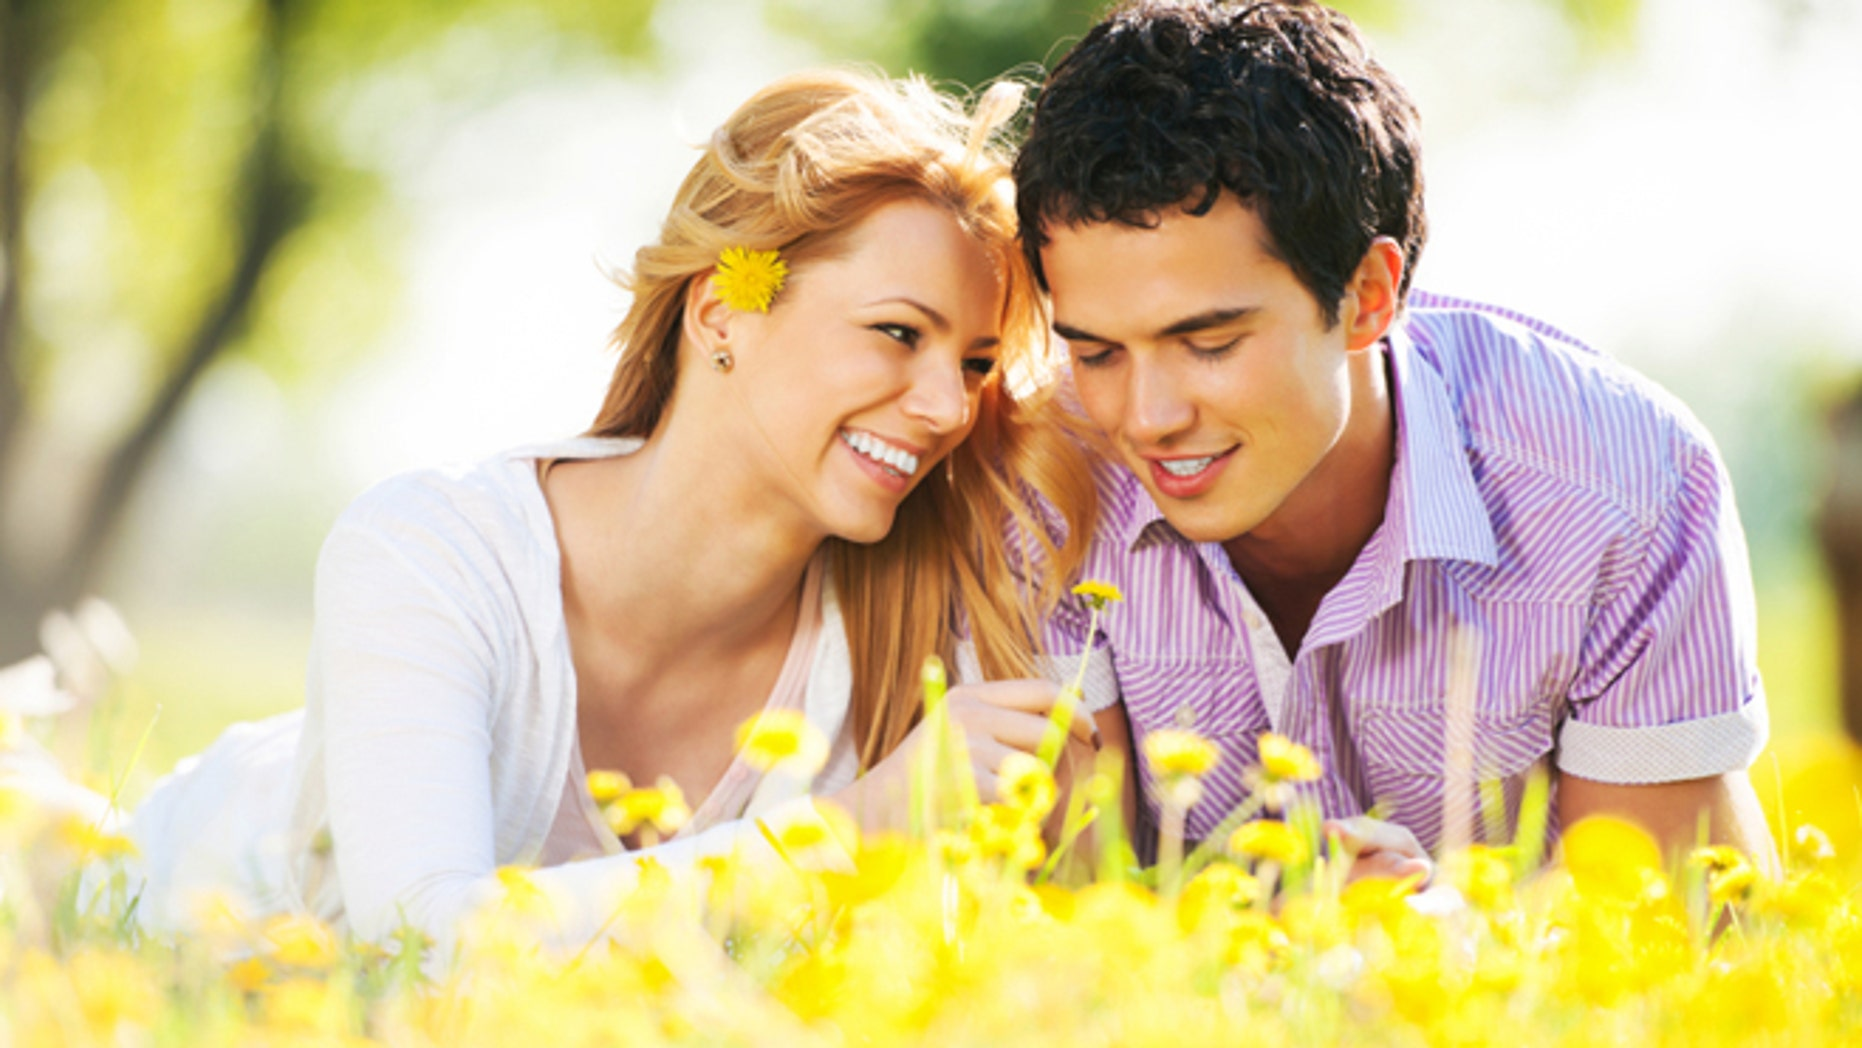 Cheerful young couple are lying among the dandelions and enjoying in the nature. [url=http://www.istockphoto.com/search/lightbox/9786786][img]http://dl.dropbox.com/u/40117171/couples.jpg[/img][/url]